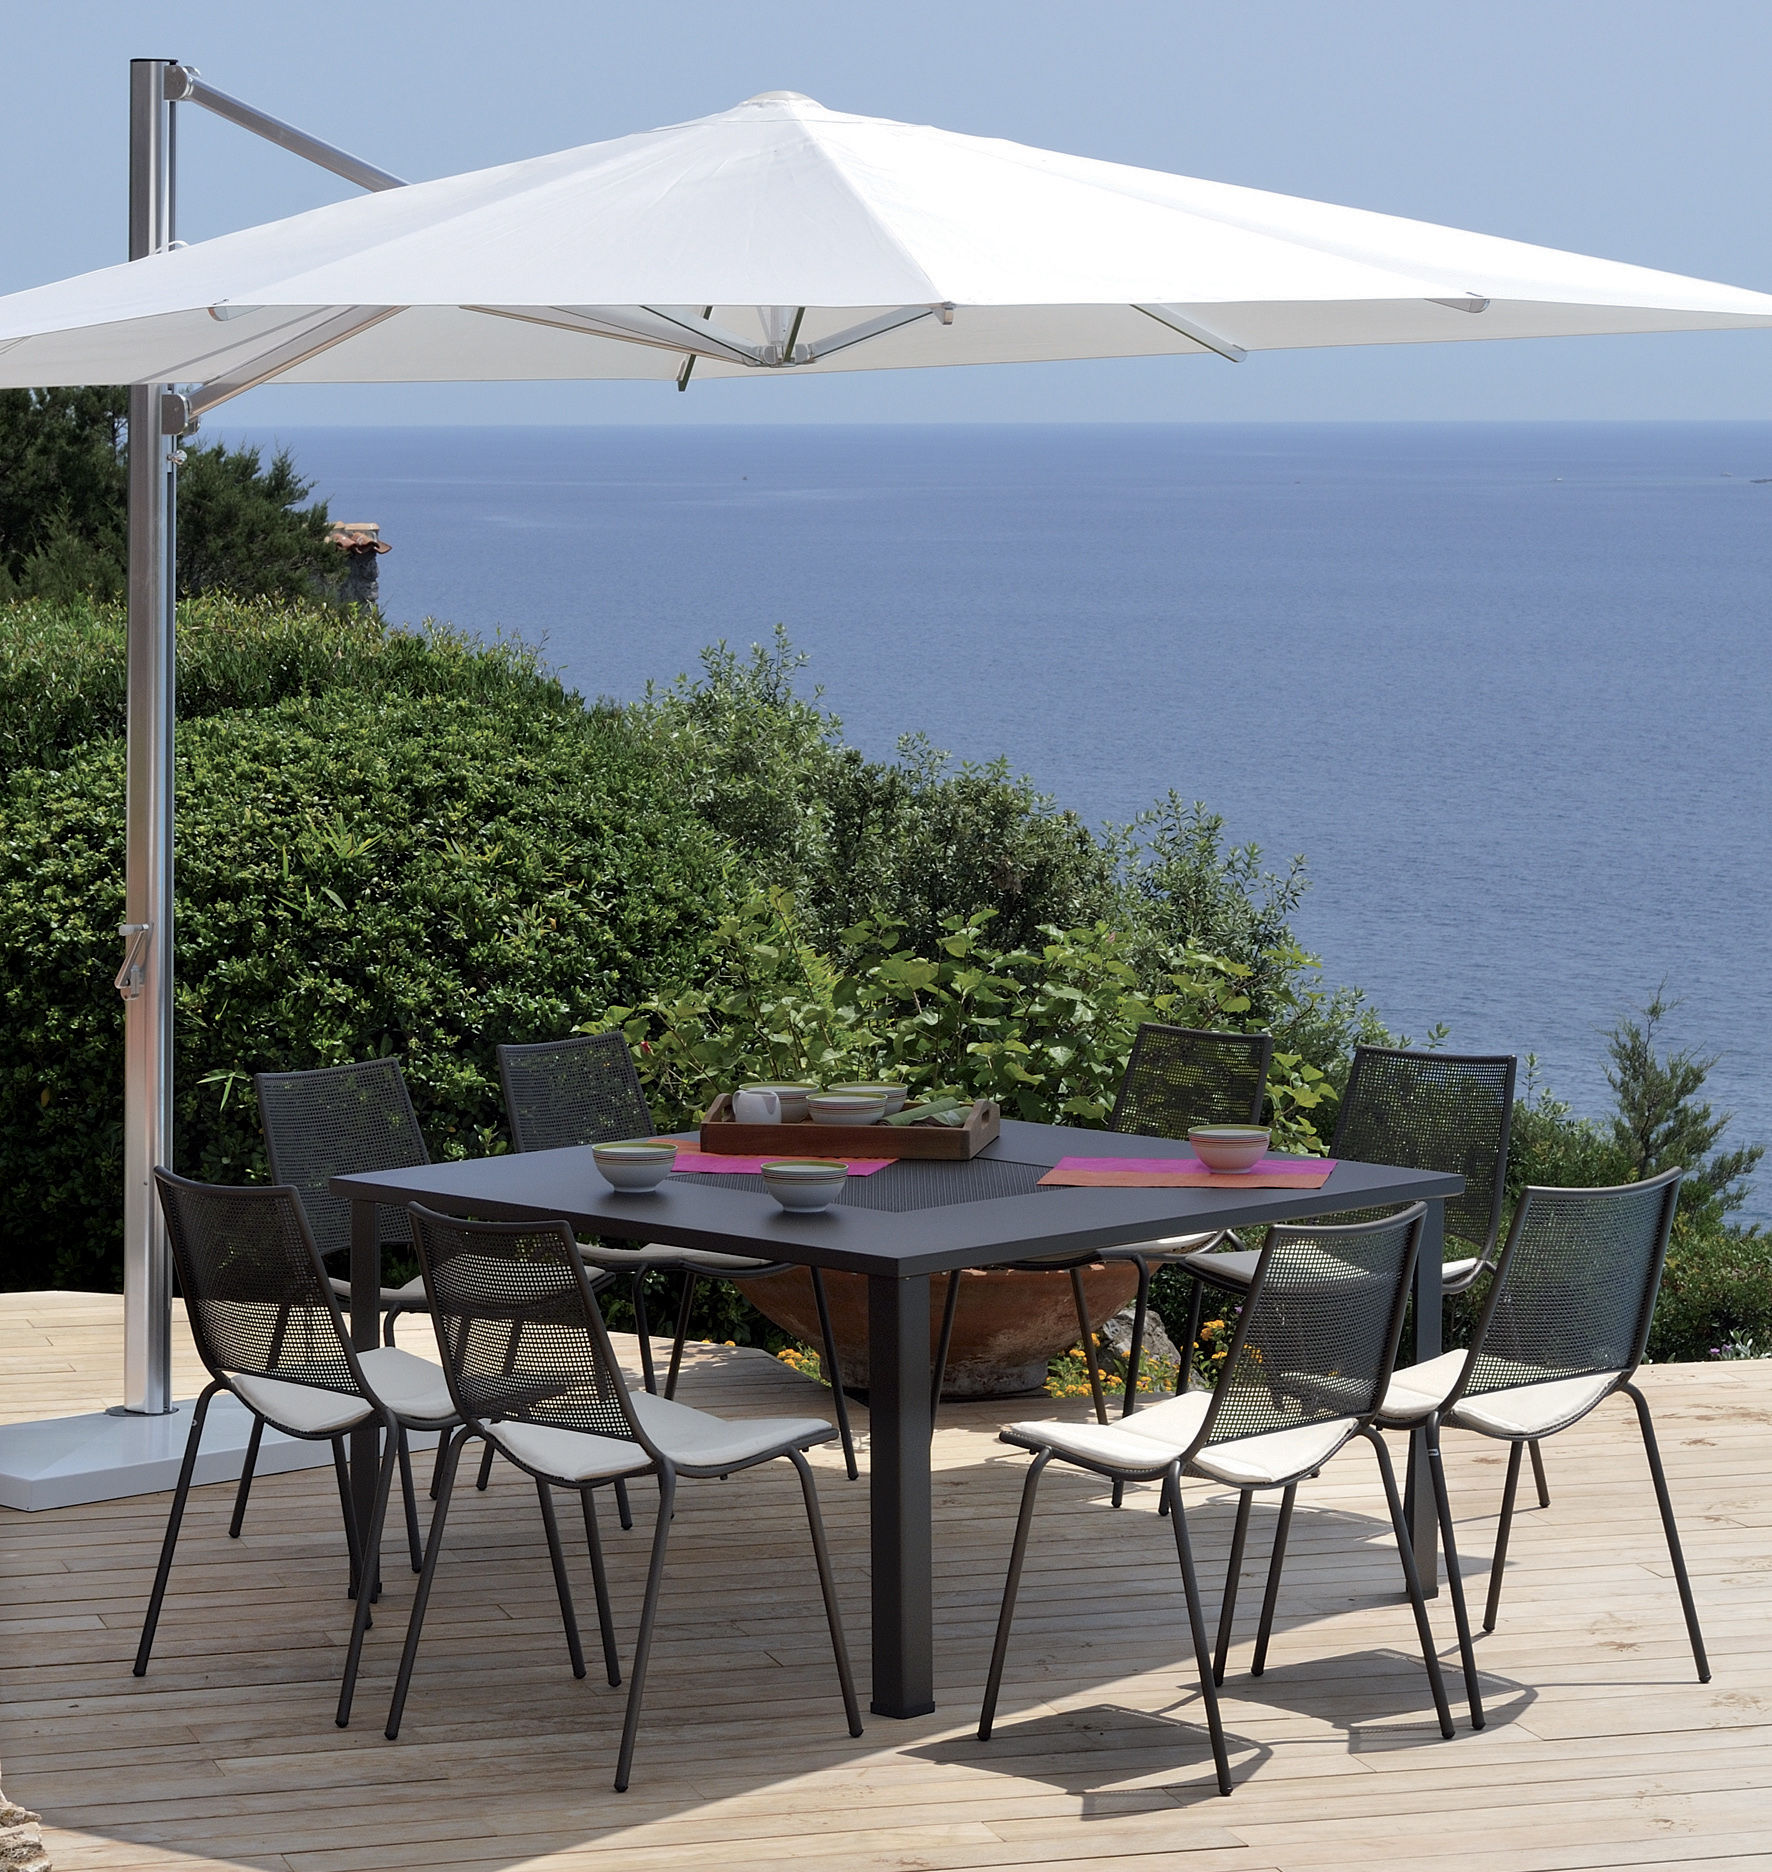 Parasol d port shade emu toile blanche m t alu base blanche h 280 x 300 made in design - Toile de parasol deporte ...